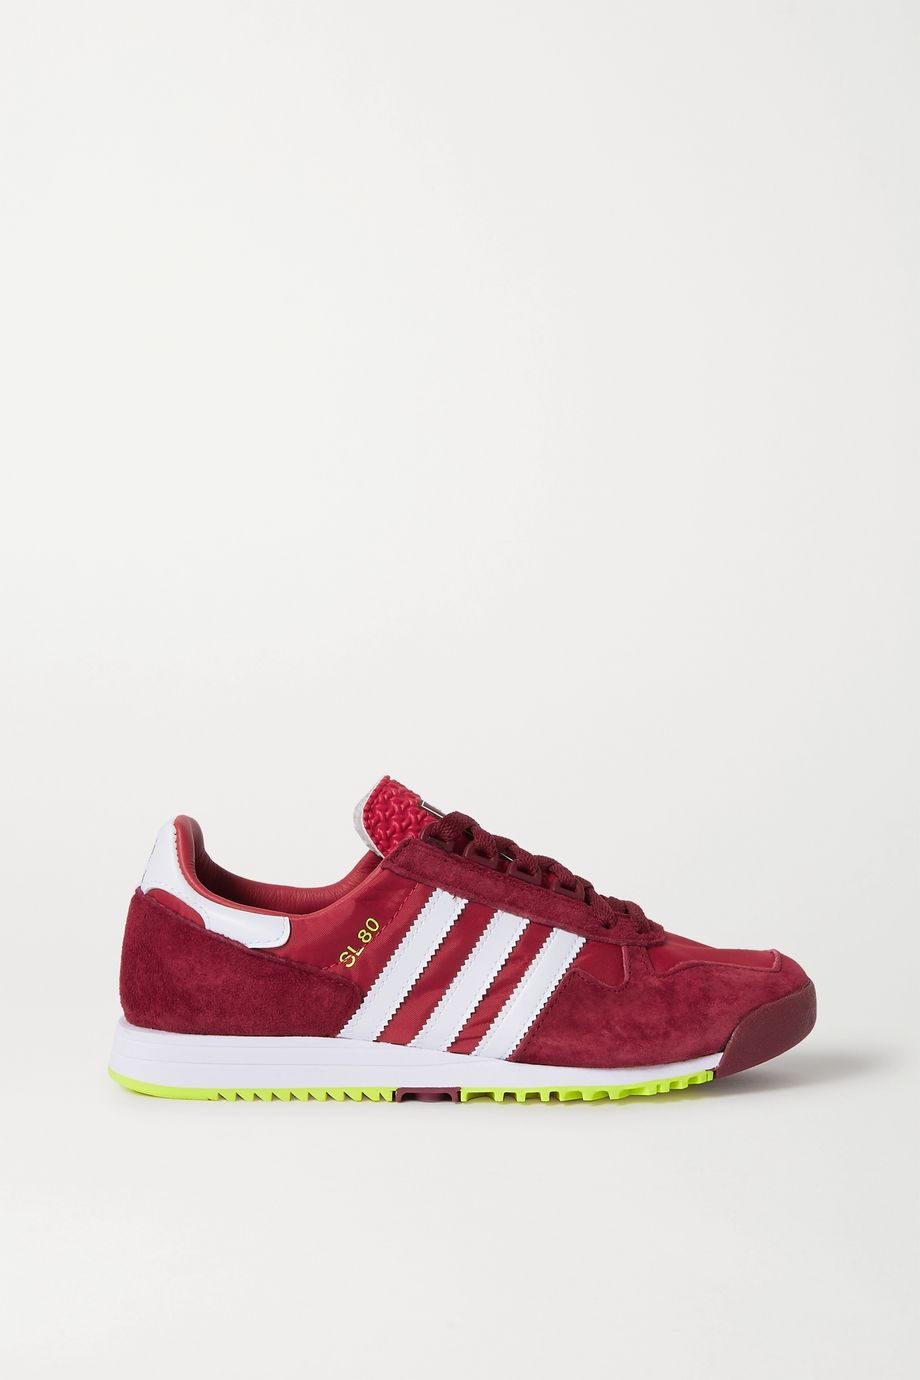 adidas Originals SL 80 suede, leather and nylon sneakers